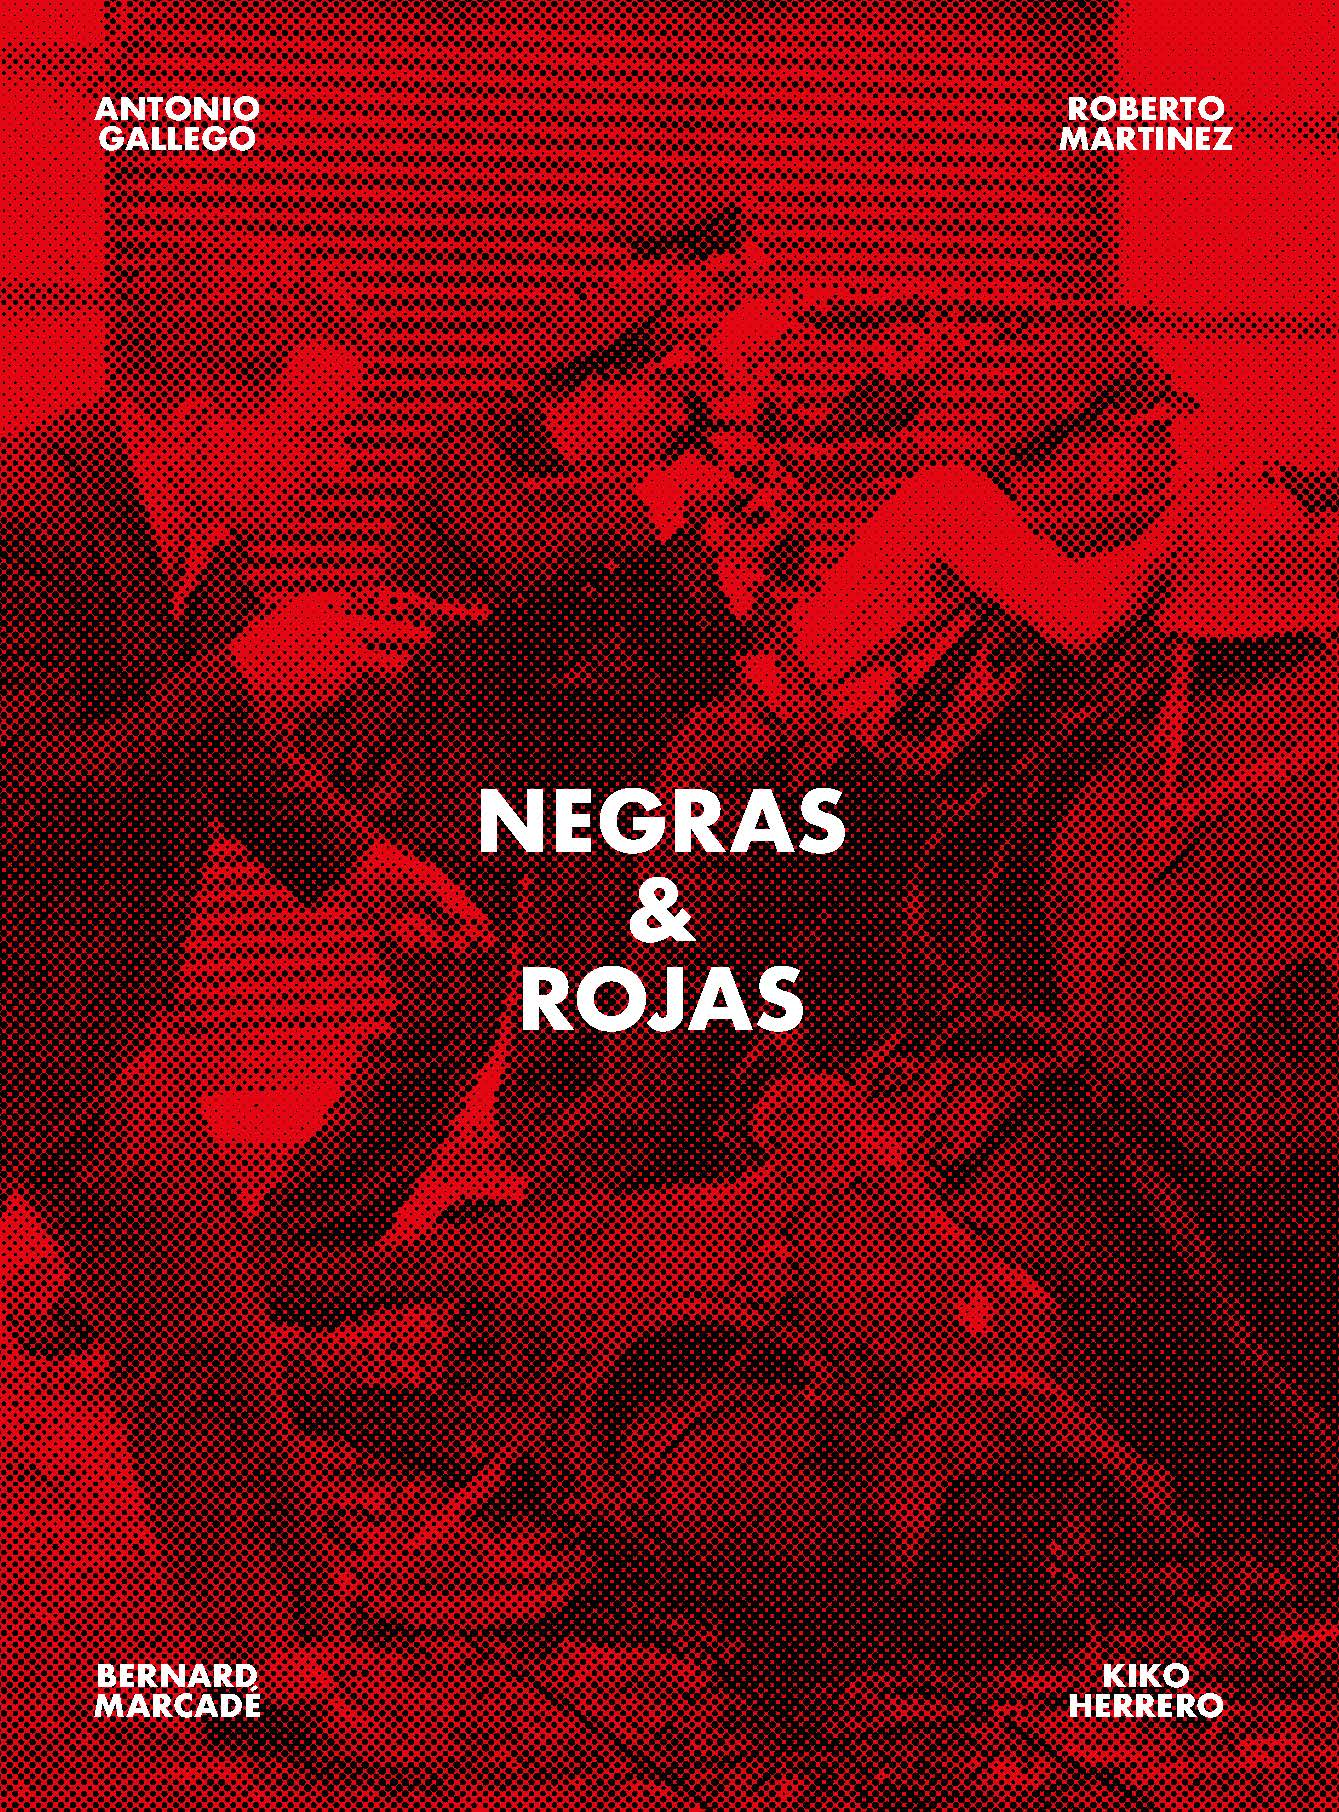 View details of NEGRAS & ROJAS